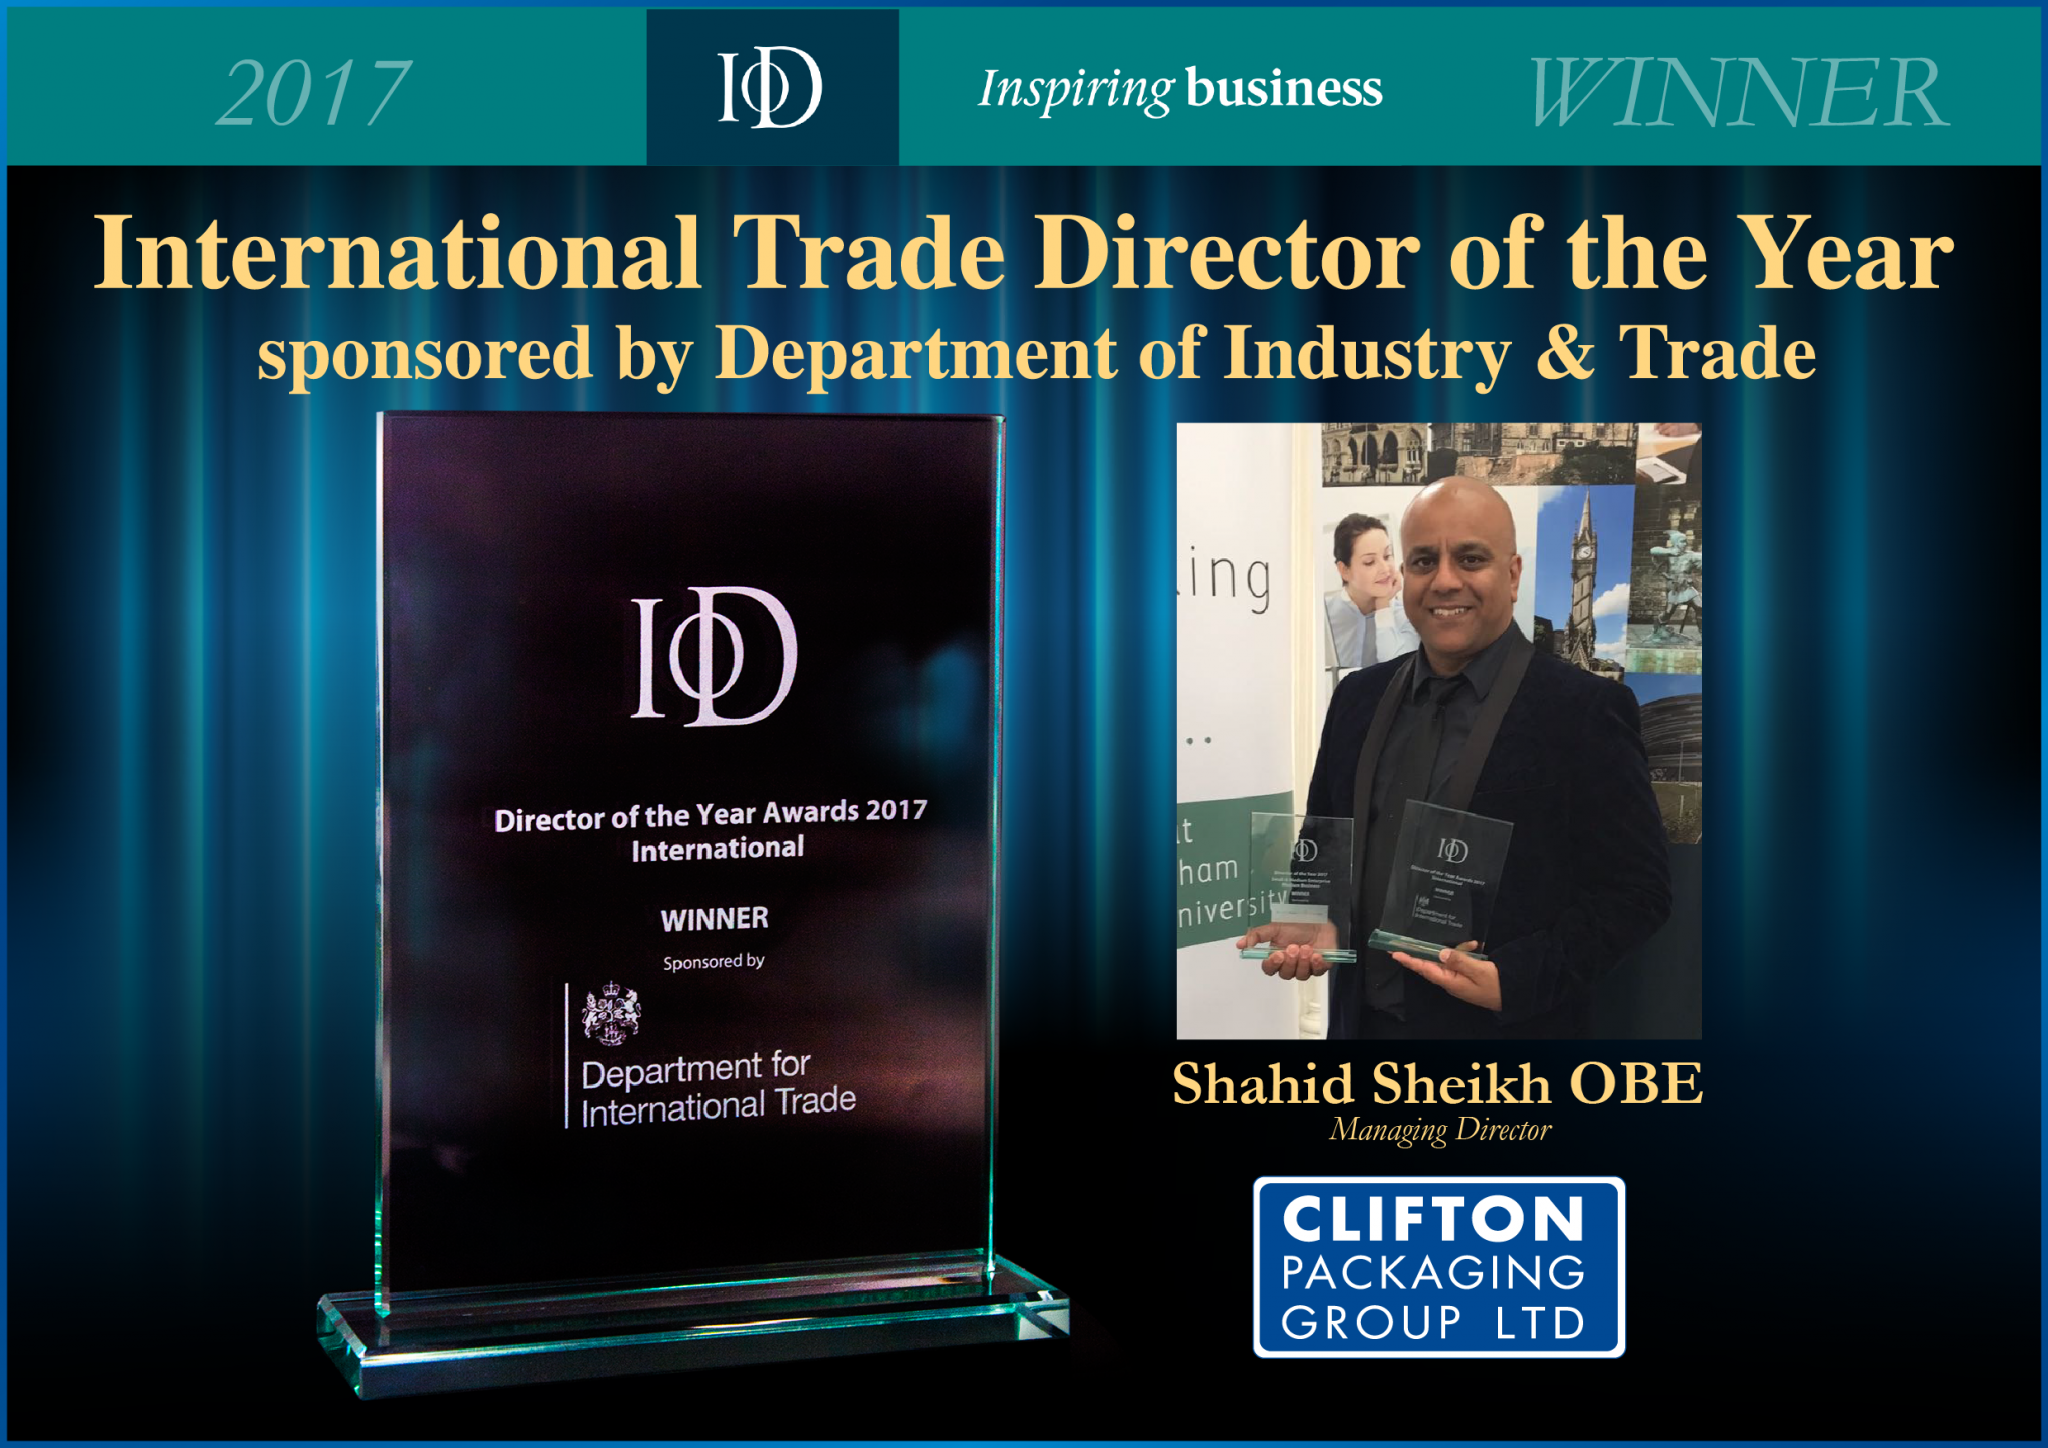 International Trade Director of the Year 2017, Clifton Packaging Group ltd. Packaging, Flexible Packaging